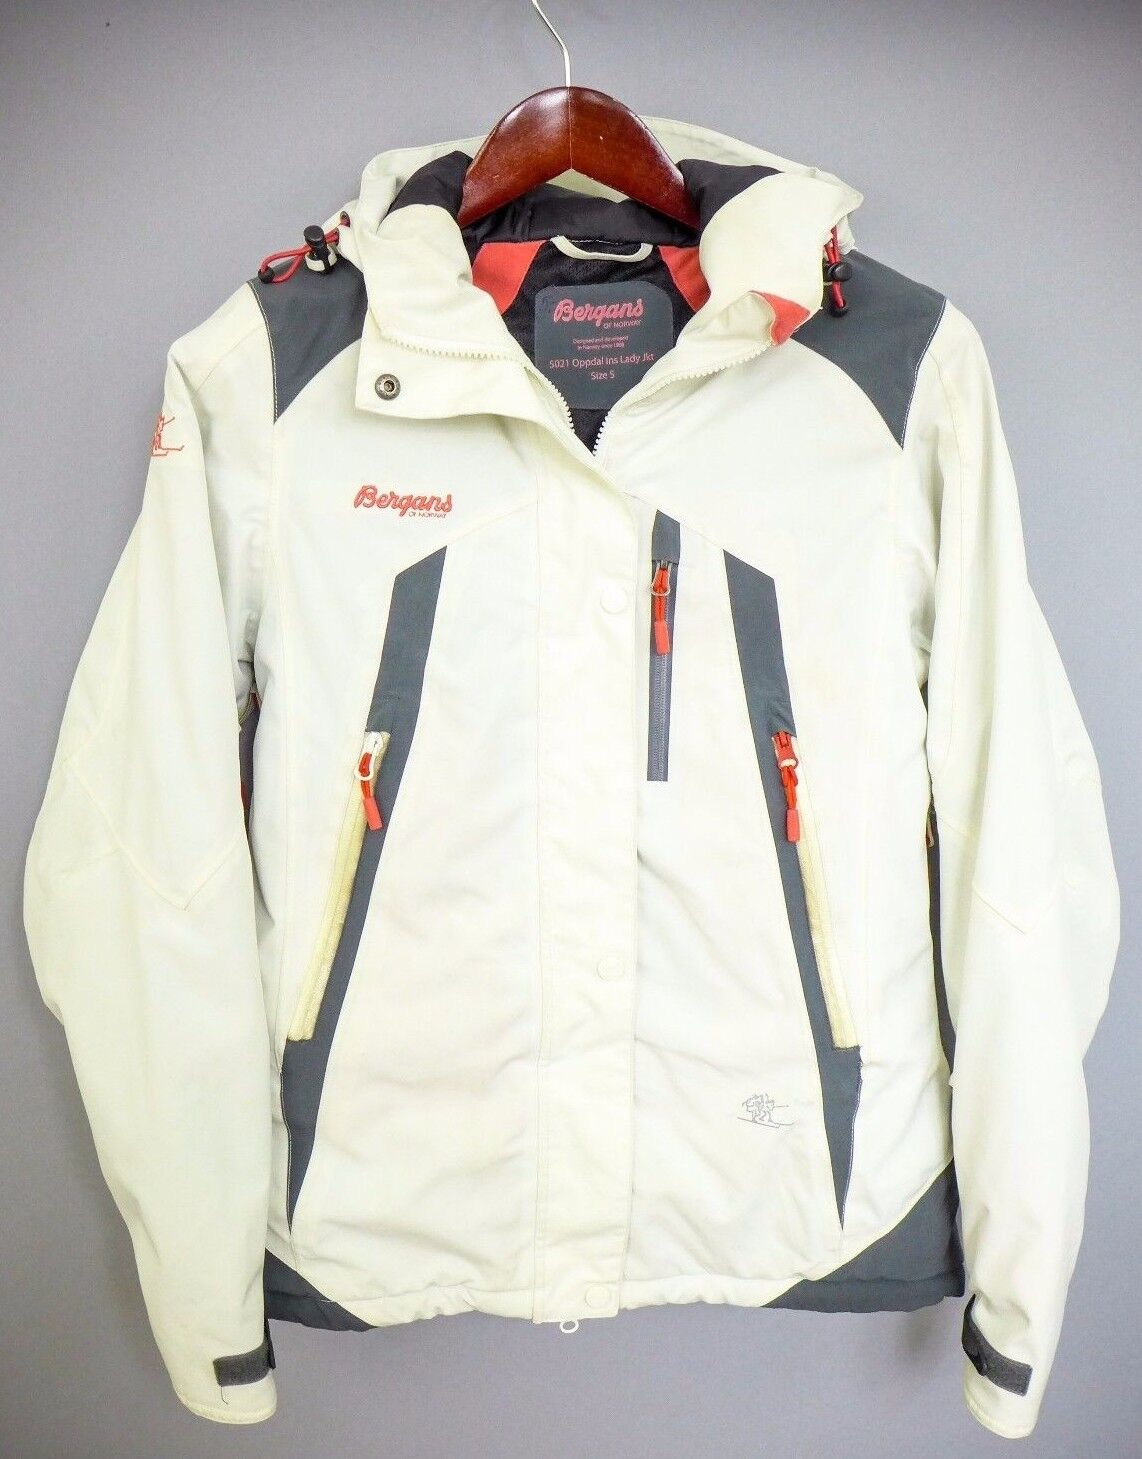 XII323 Mujer Bergans Of Norway 5021 Oppdal Snowboard Esquí CHAQUETA S10